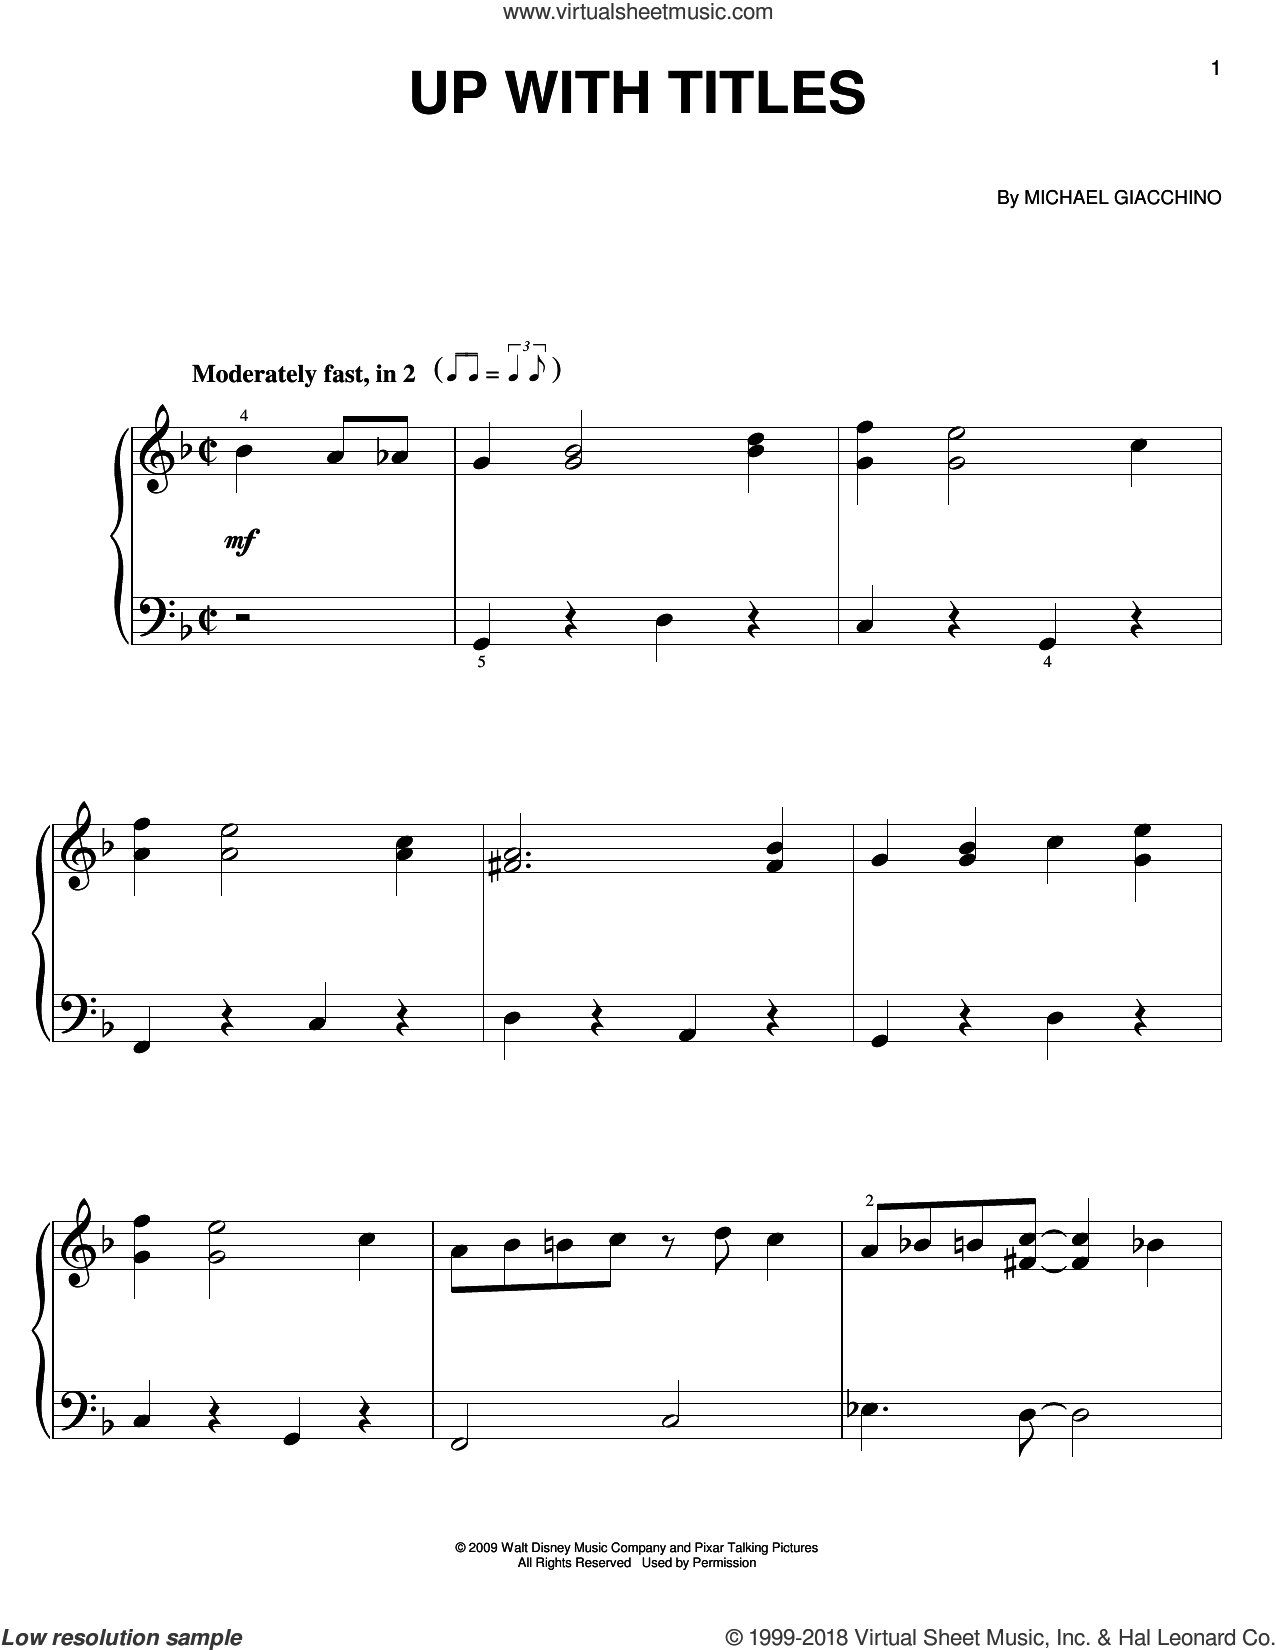 Up With Titles, (easy) sheet music for piano solo by Michael Giacchino, easy skill level